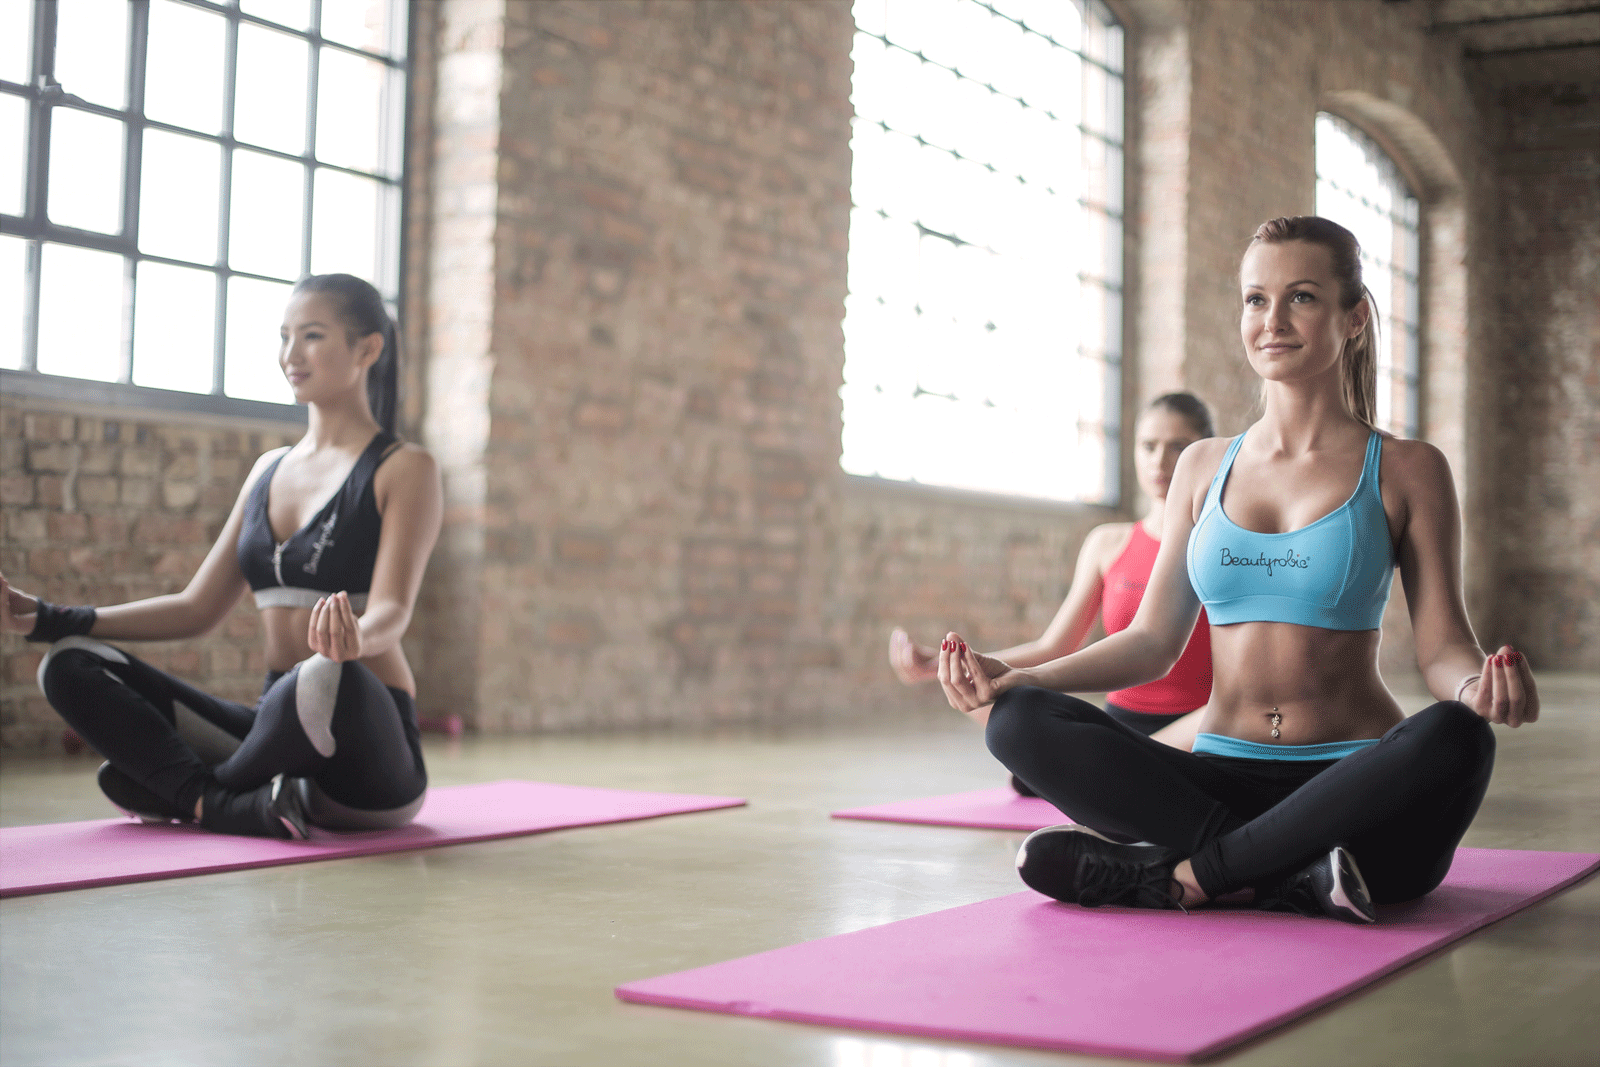 Women Doing Yoga | How To Pick The Right Yoga Studio For You